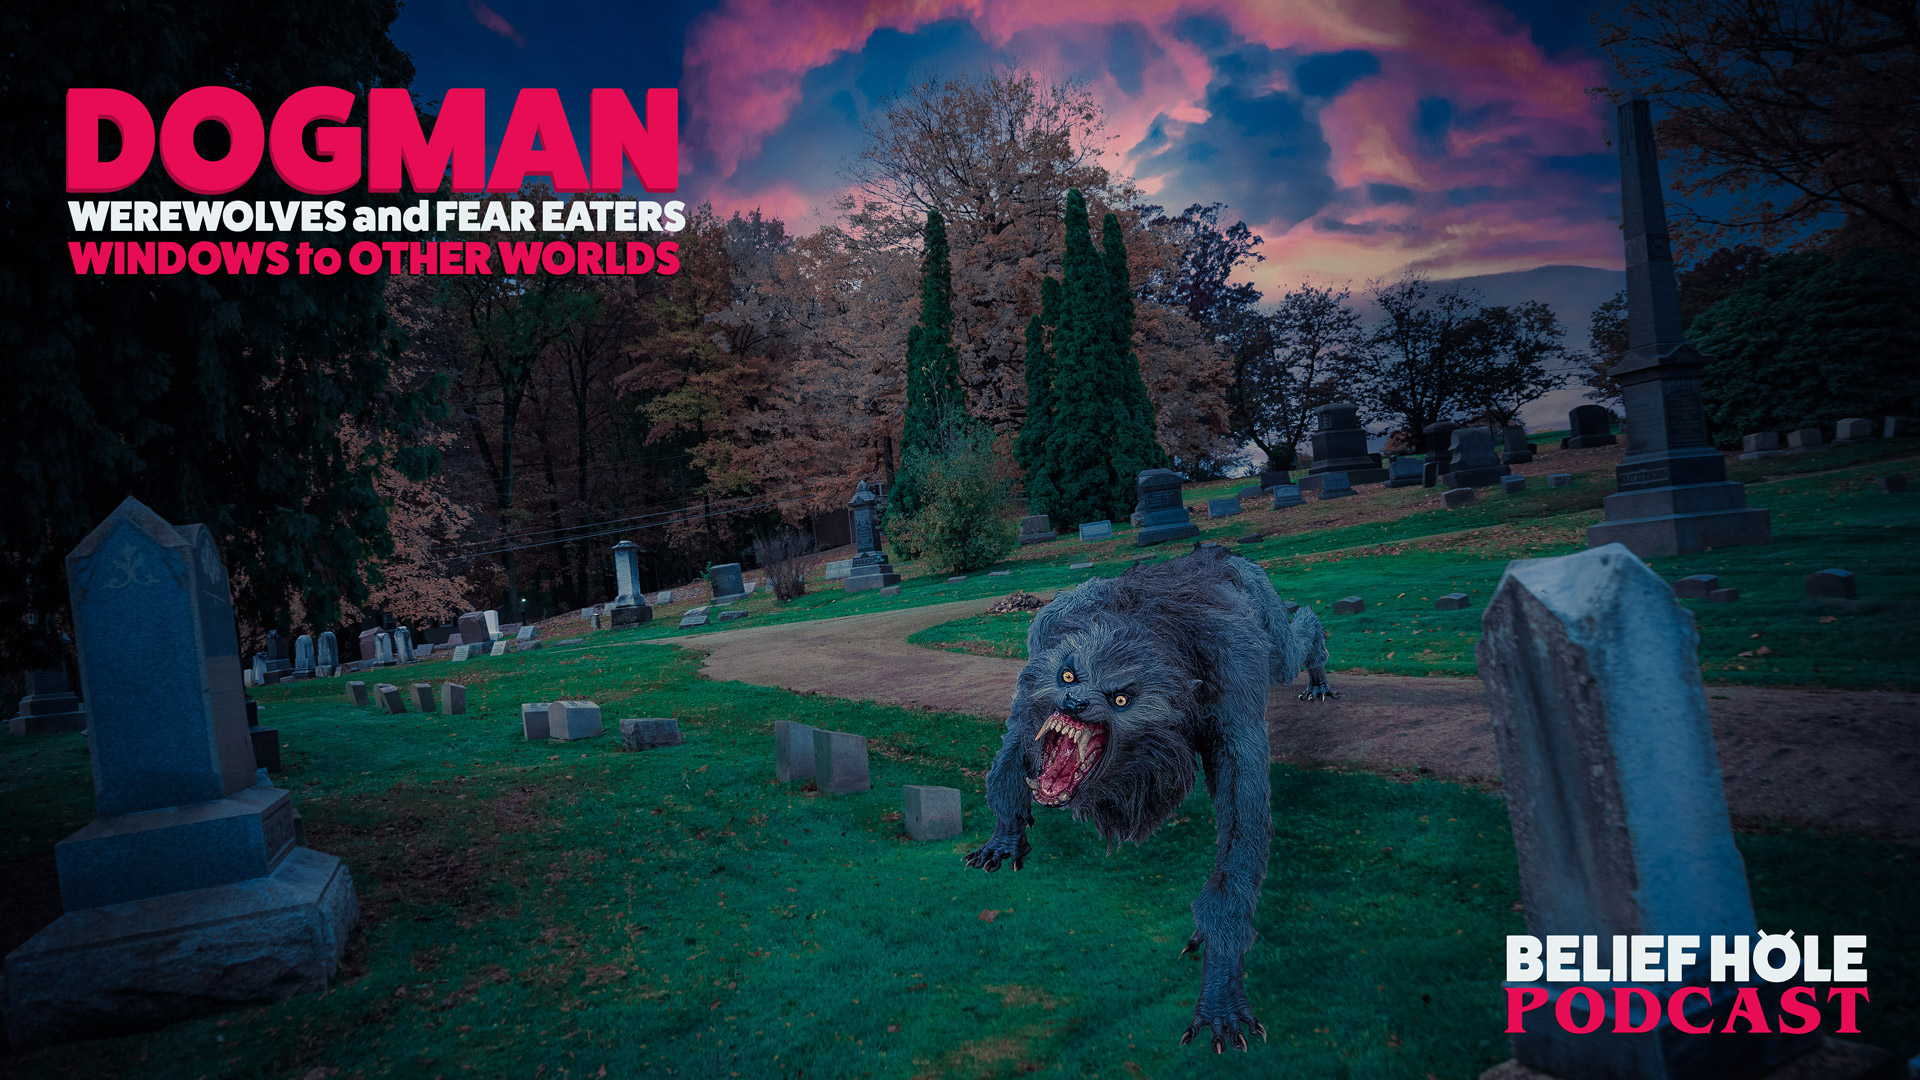 Dogman-Podcast-Werewolves-Paranormal-Dogman Stories-Dogman History and Fear Eaters